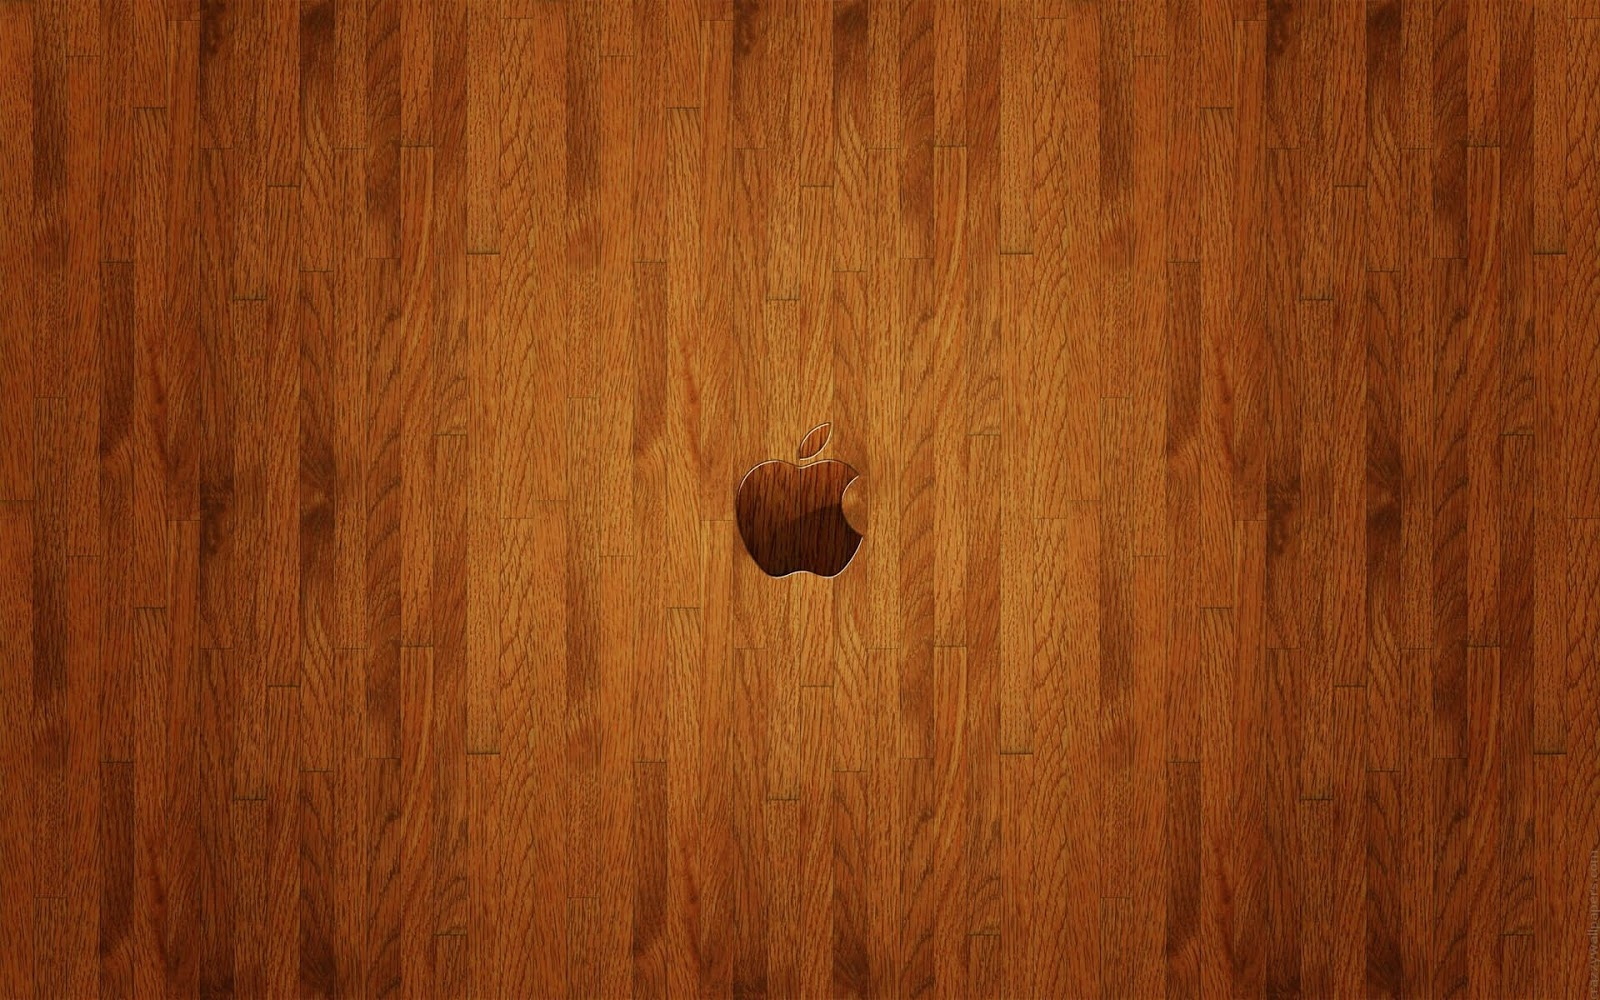 Apple Brown Wooden